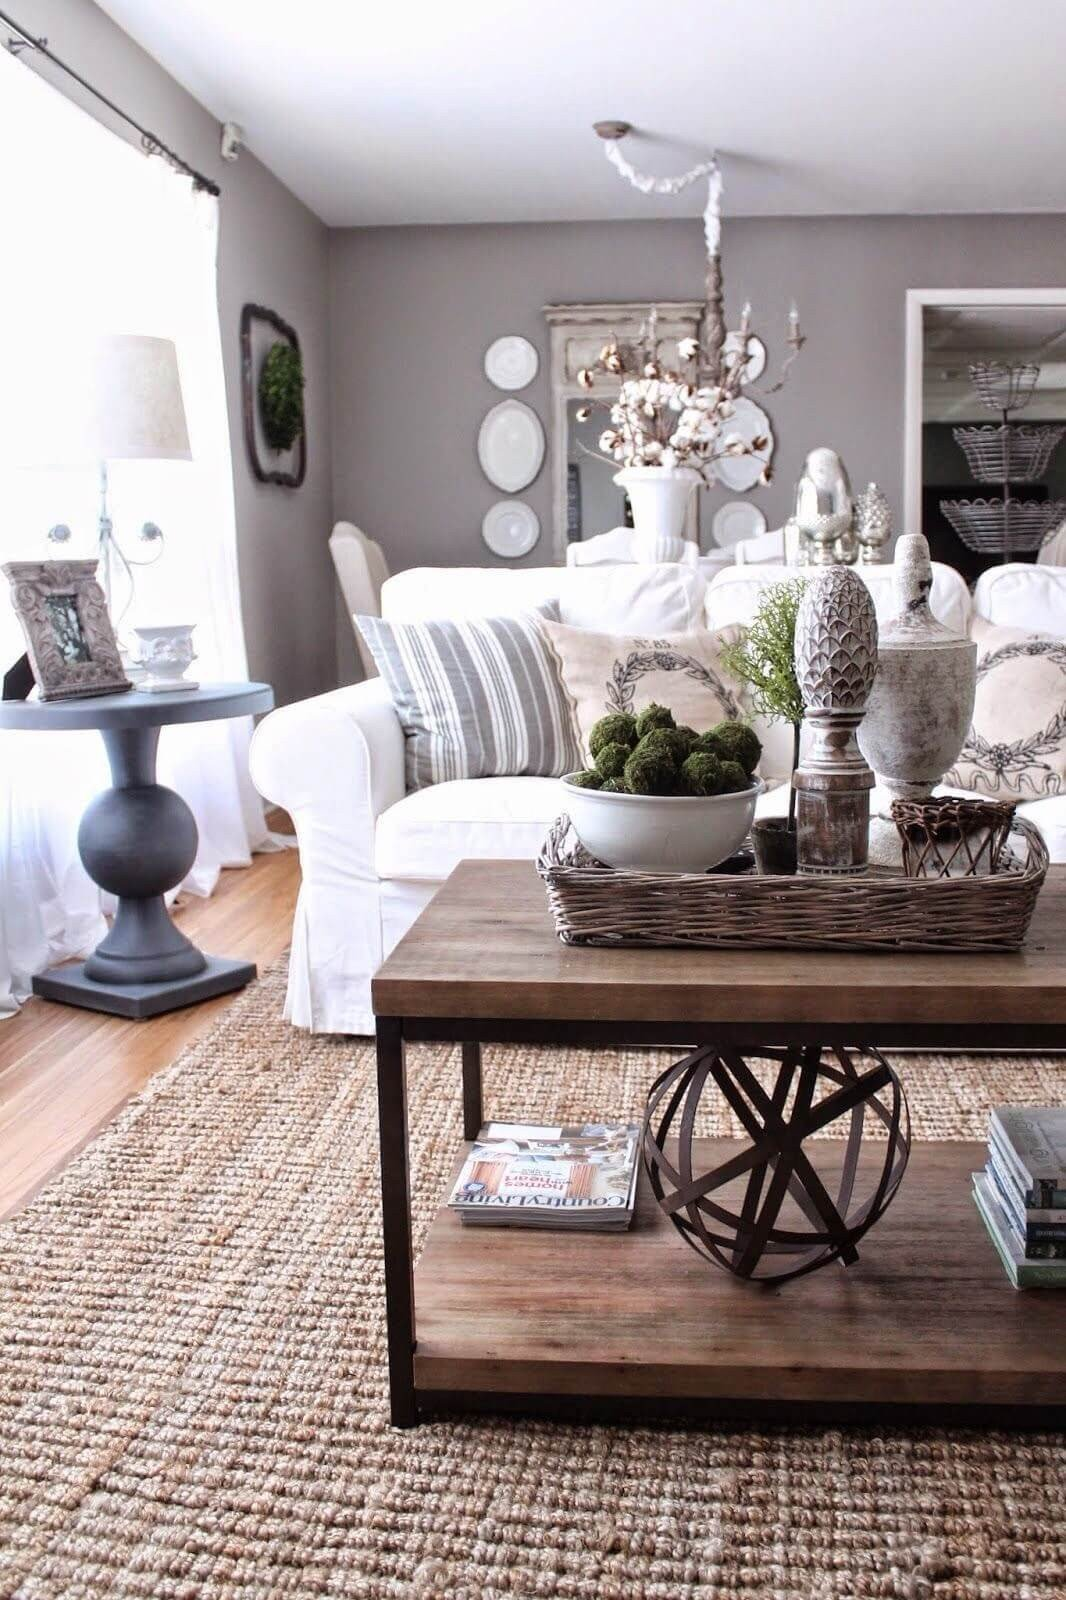 Table Decorating Ideas Living Room Awesome 37 Best Coffee Table Decorating Ideas and Designs for 2019